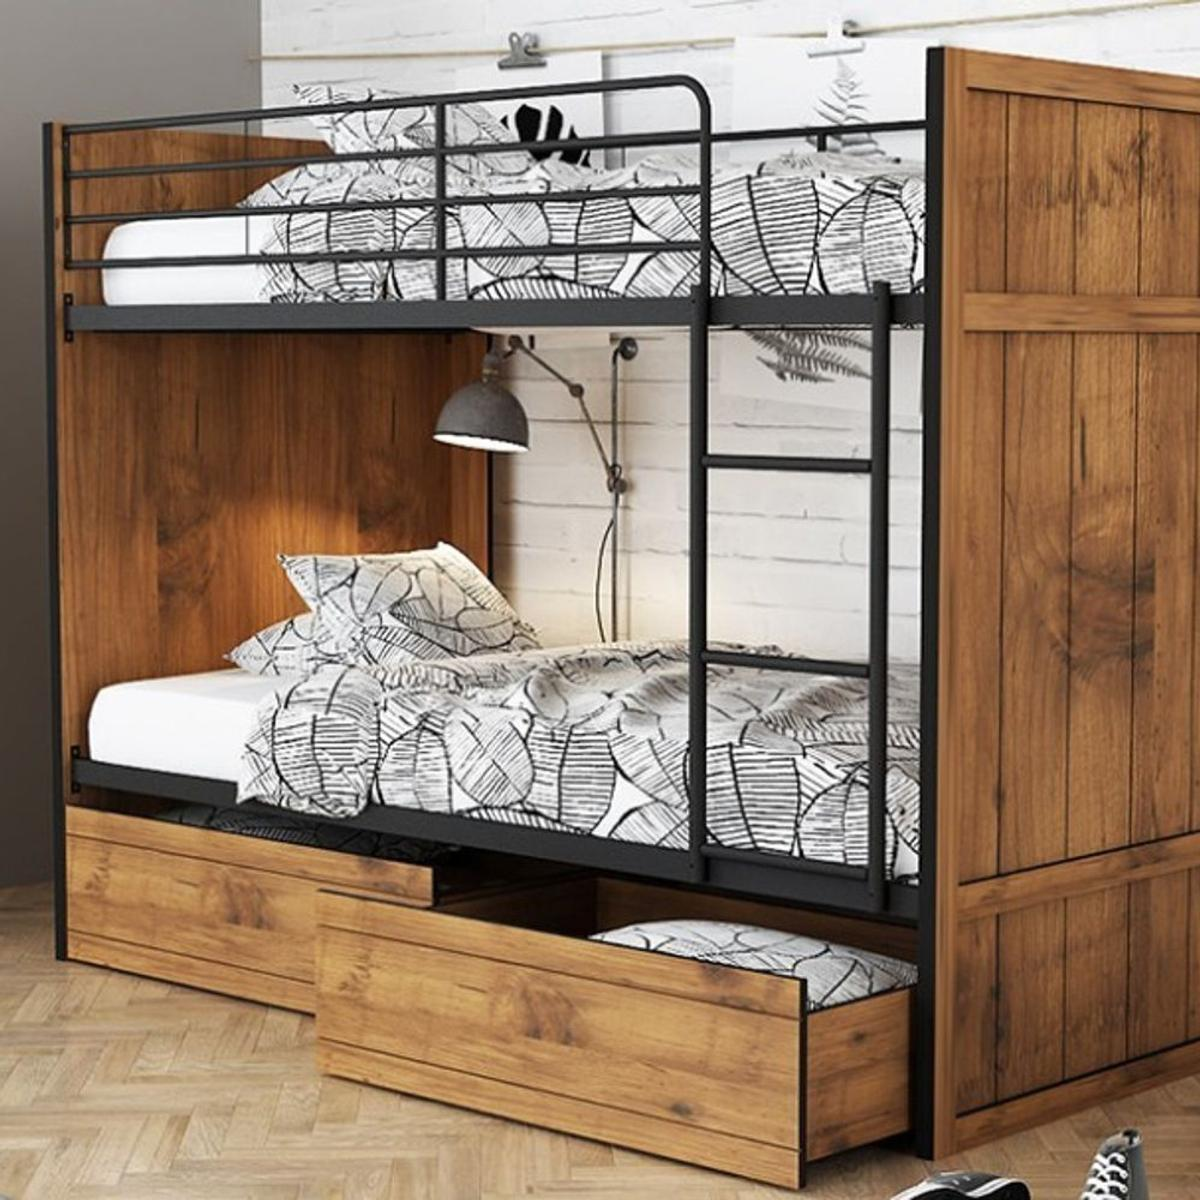 Vintage Bunk Bed With Mattress In Ls122ua Leeds For 399 99 For Sale Shpock